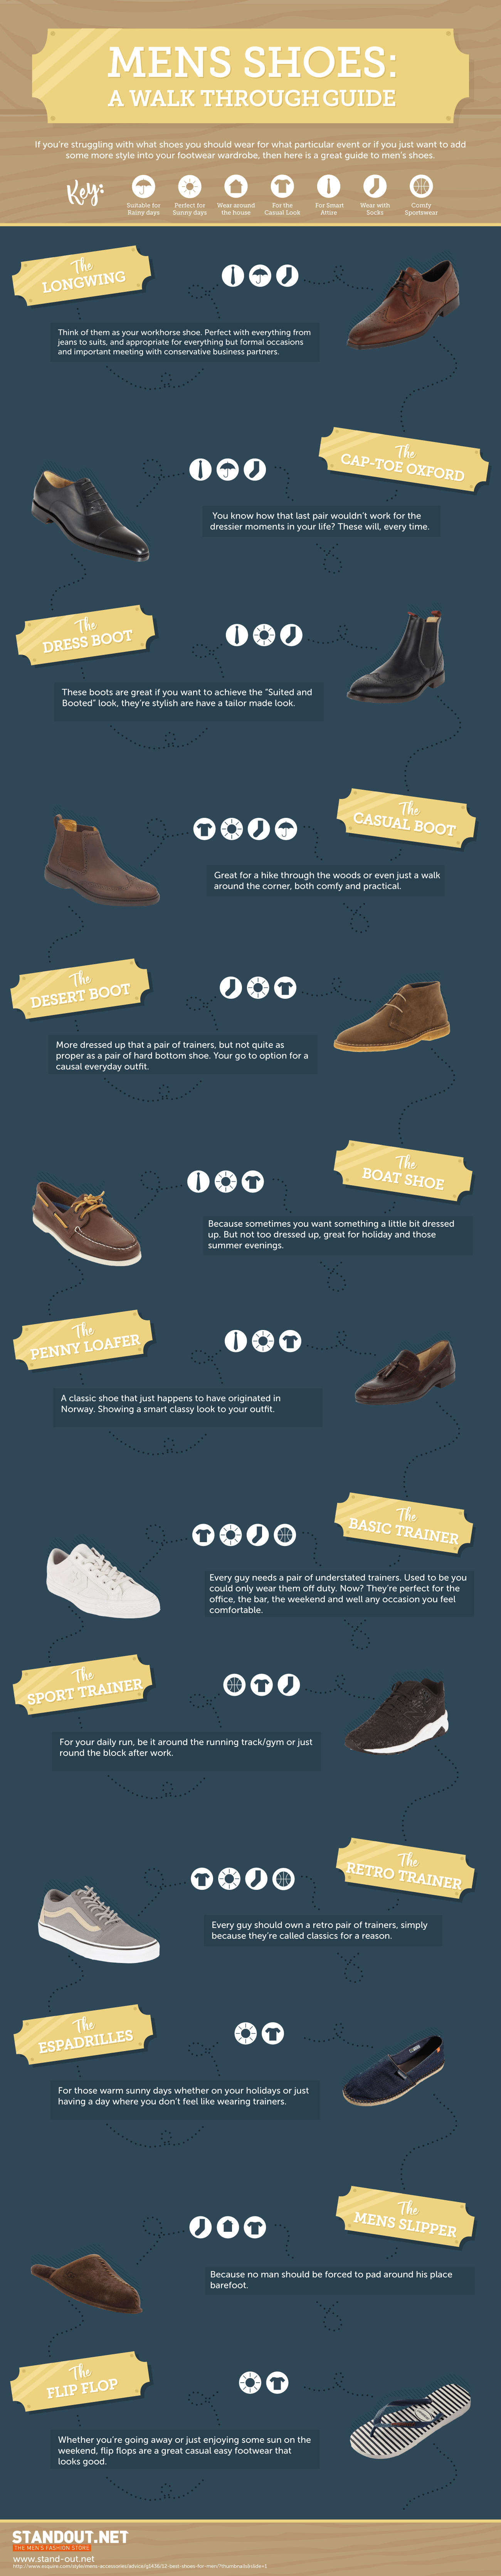 Guide-to-Mens-Shoes-min